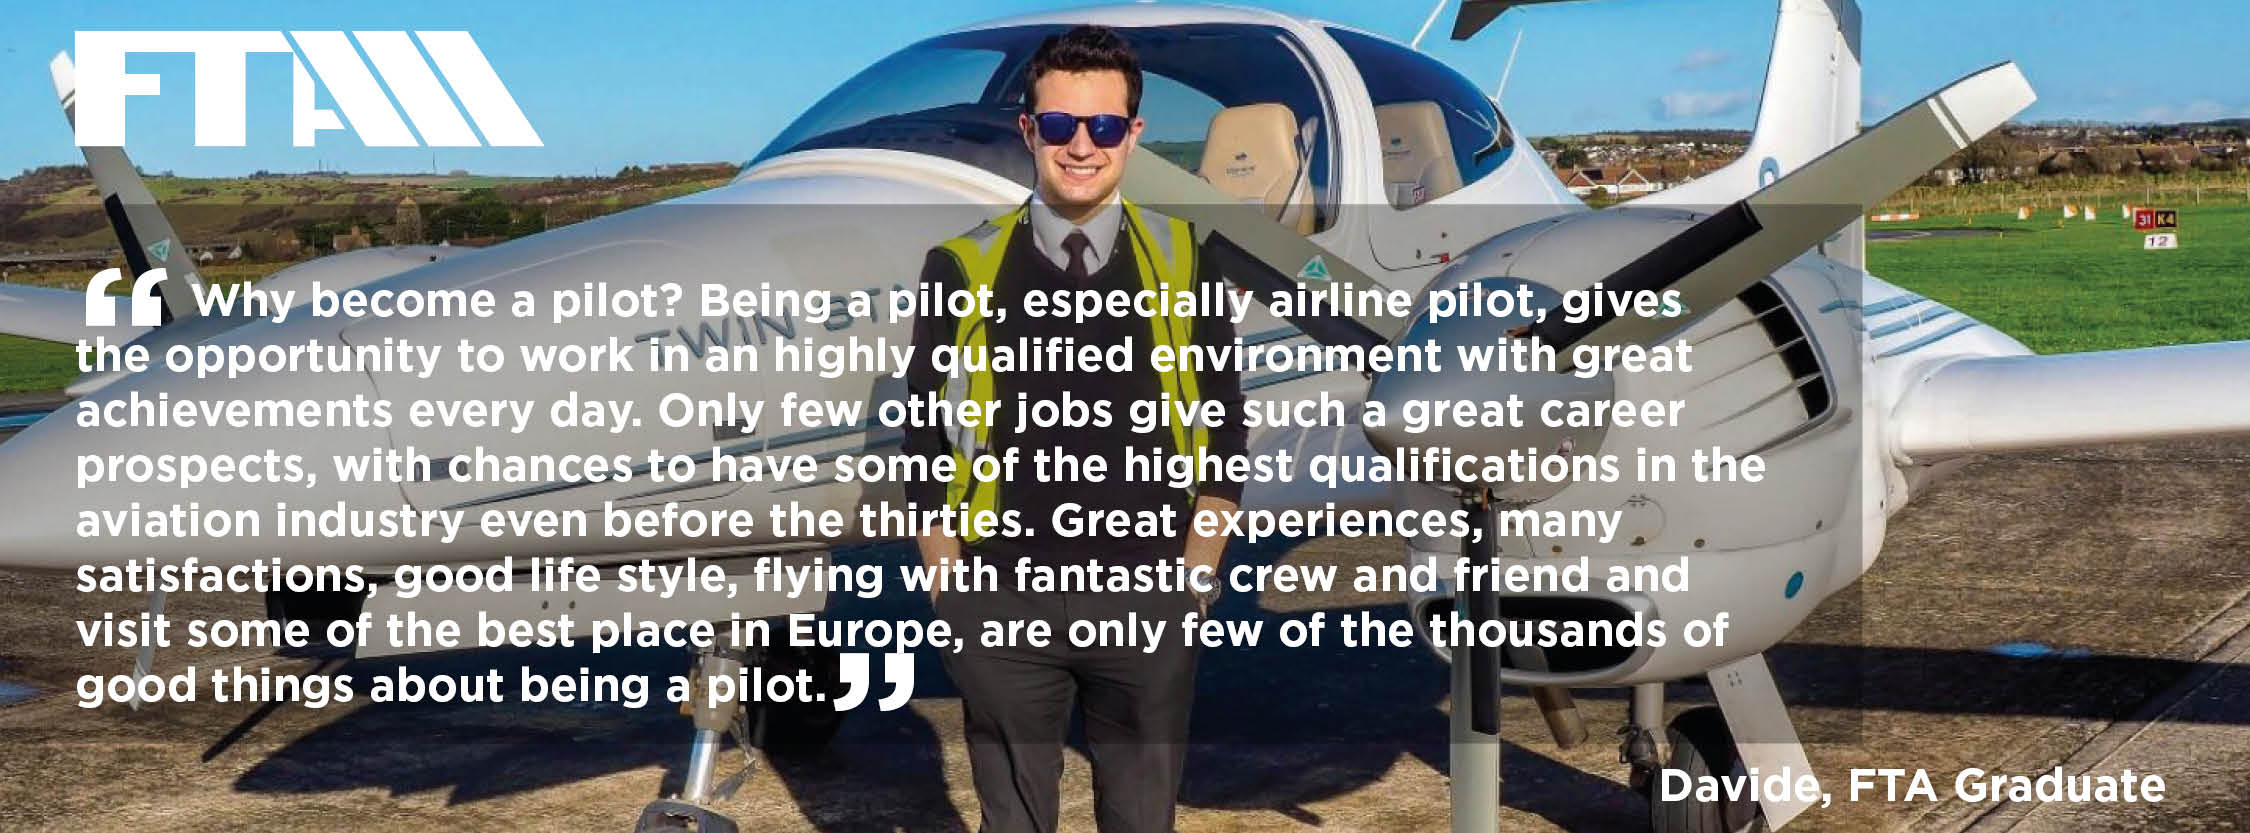 Why Become a Pilot-3.jpg